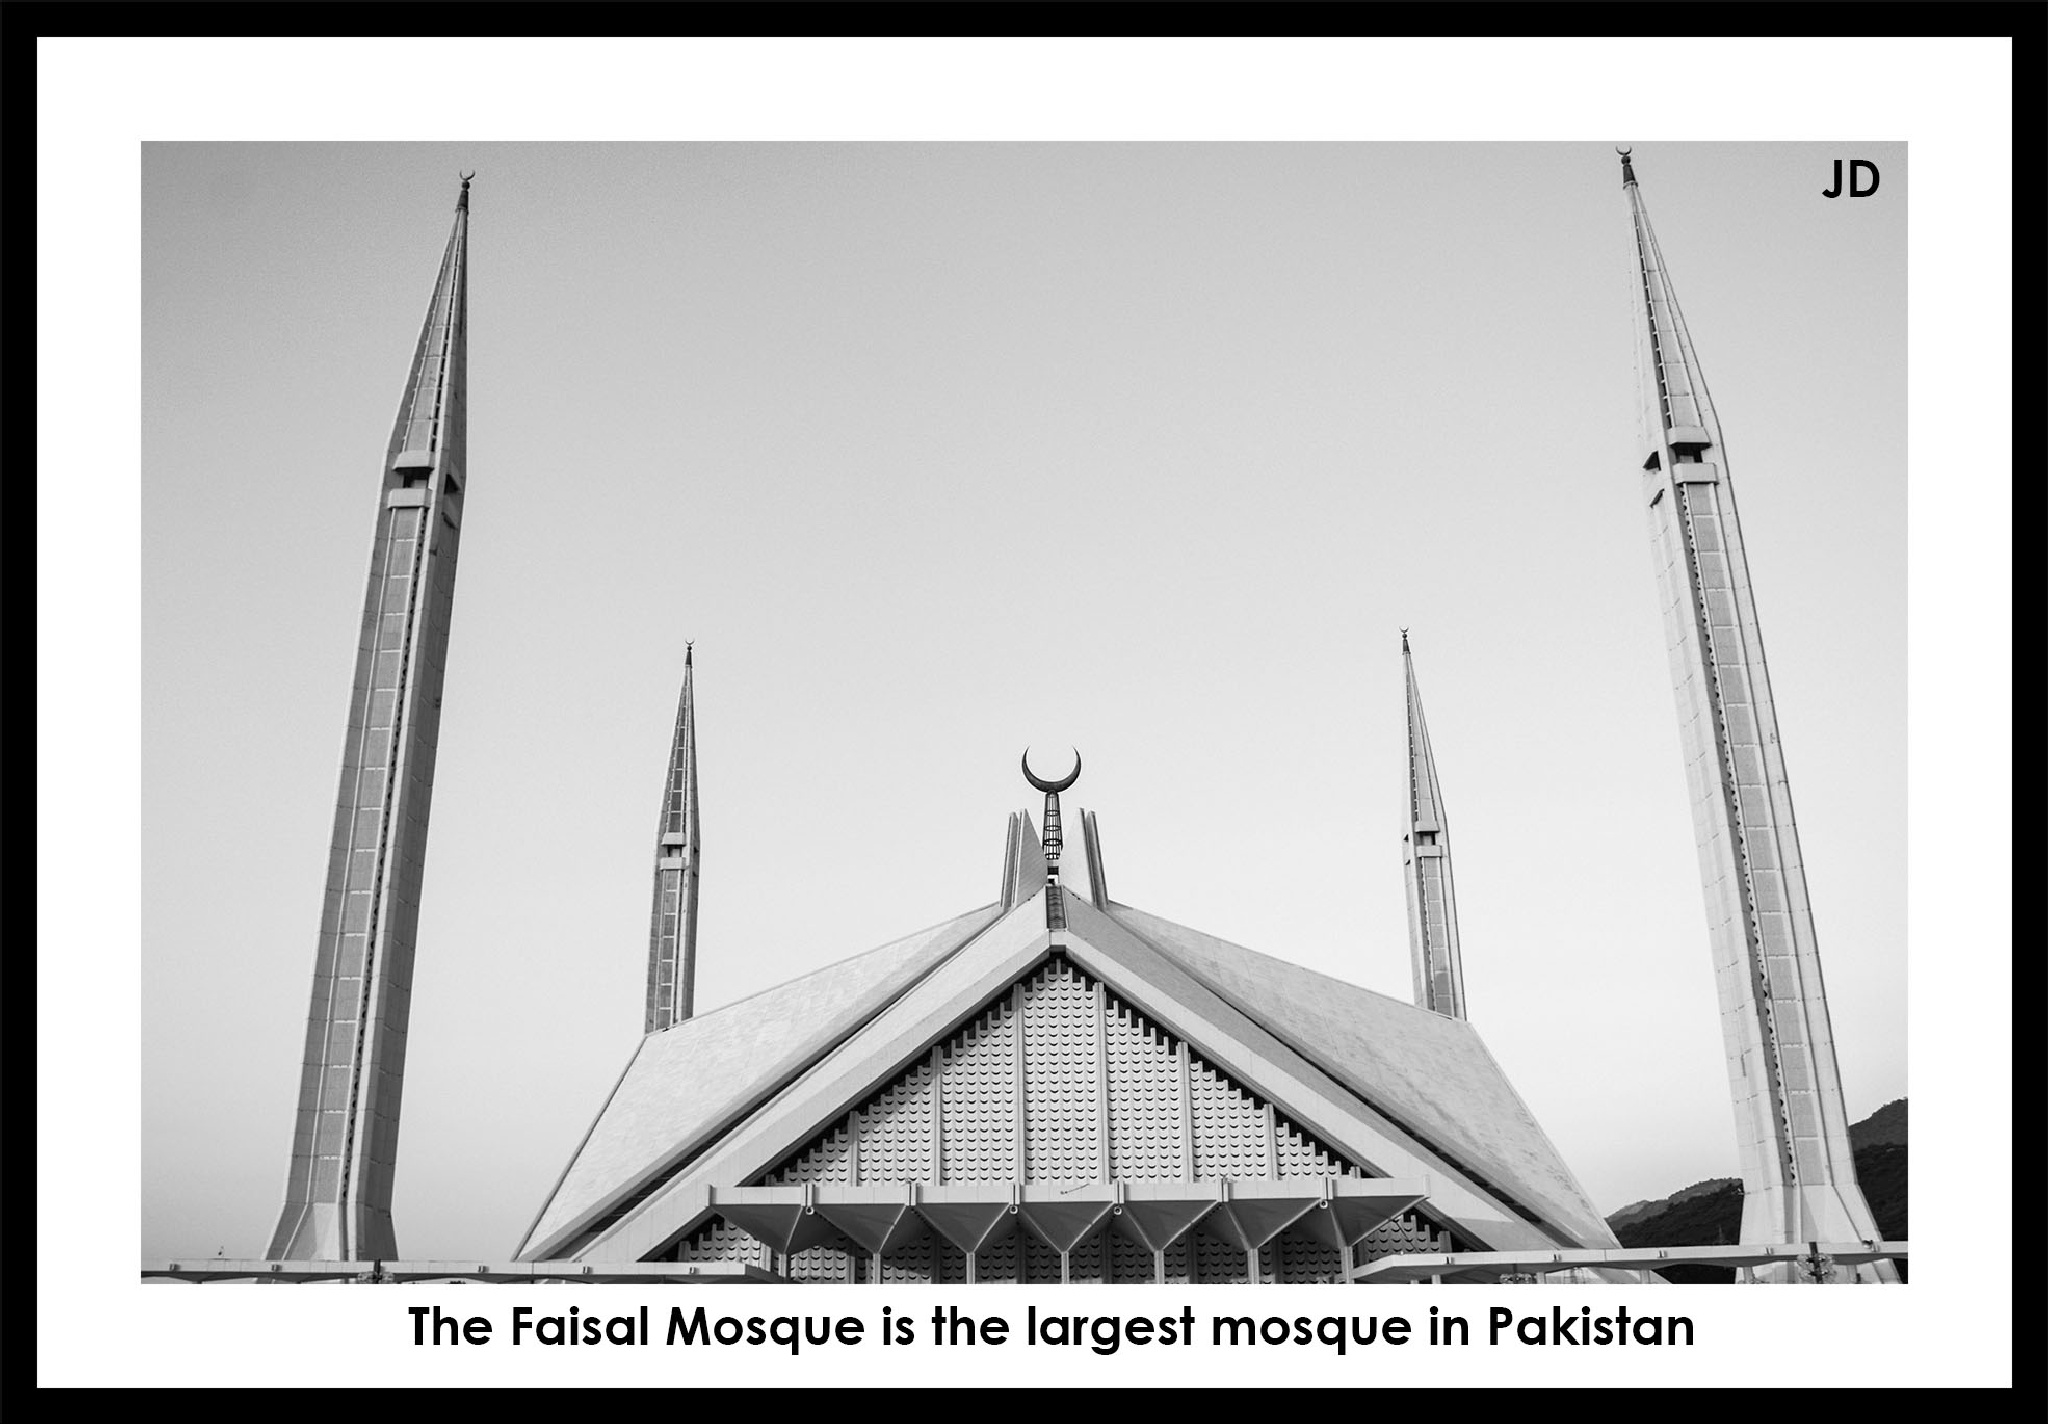 Faisal Mosque in Islamabad  by JawadJD